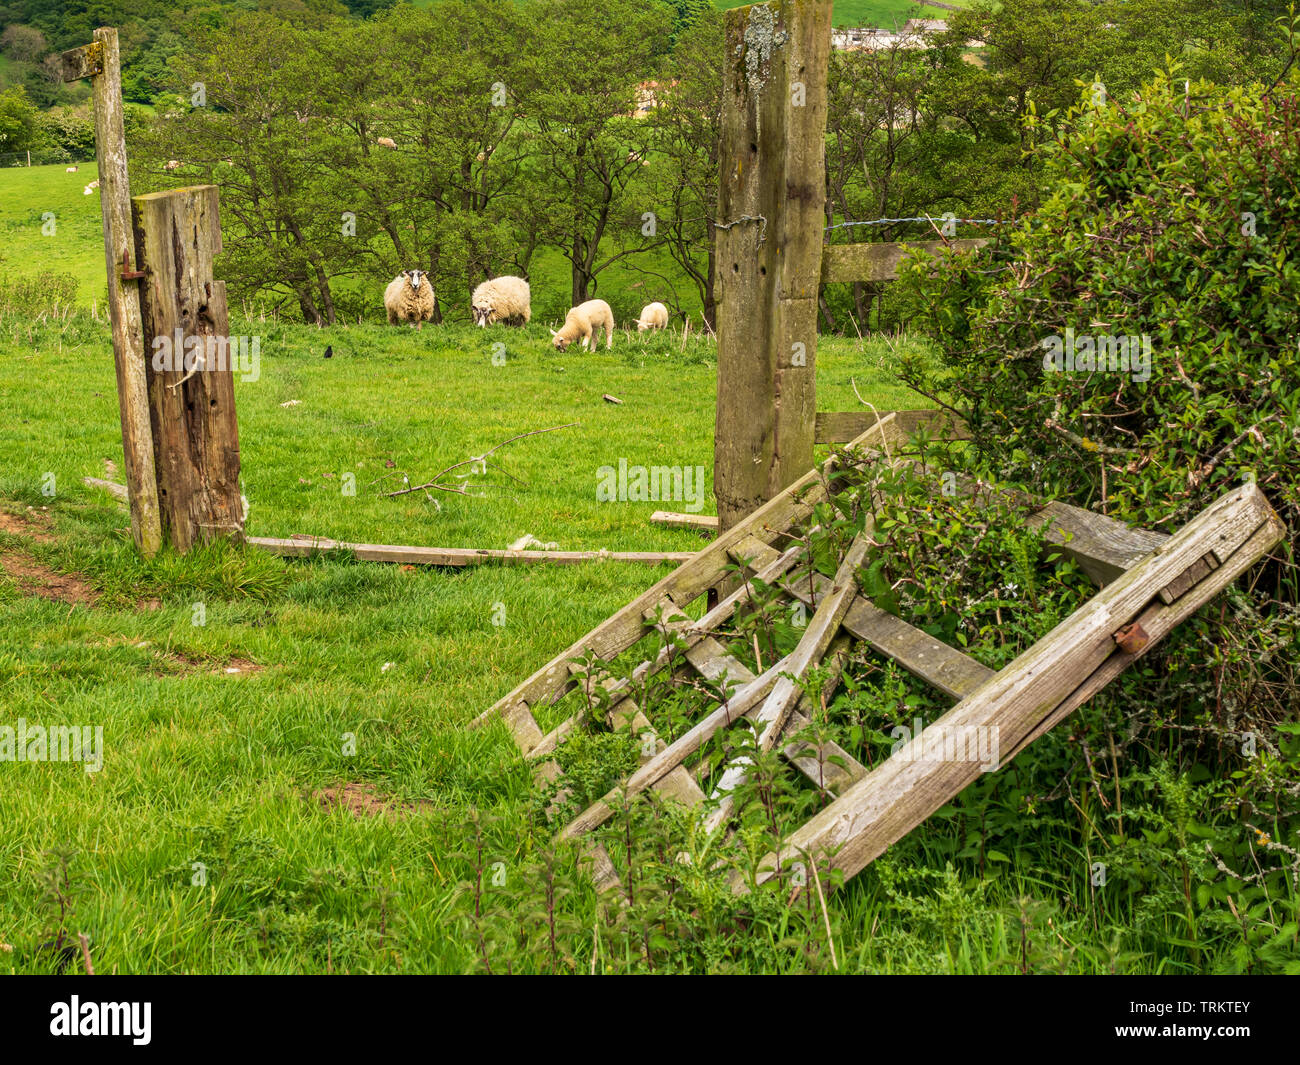 Sheep grazing by fallen down gate near Dalby, North Yorks - Stock Image